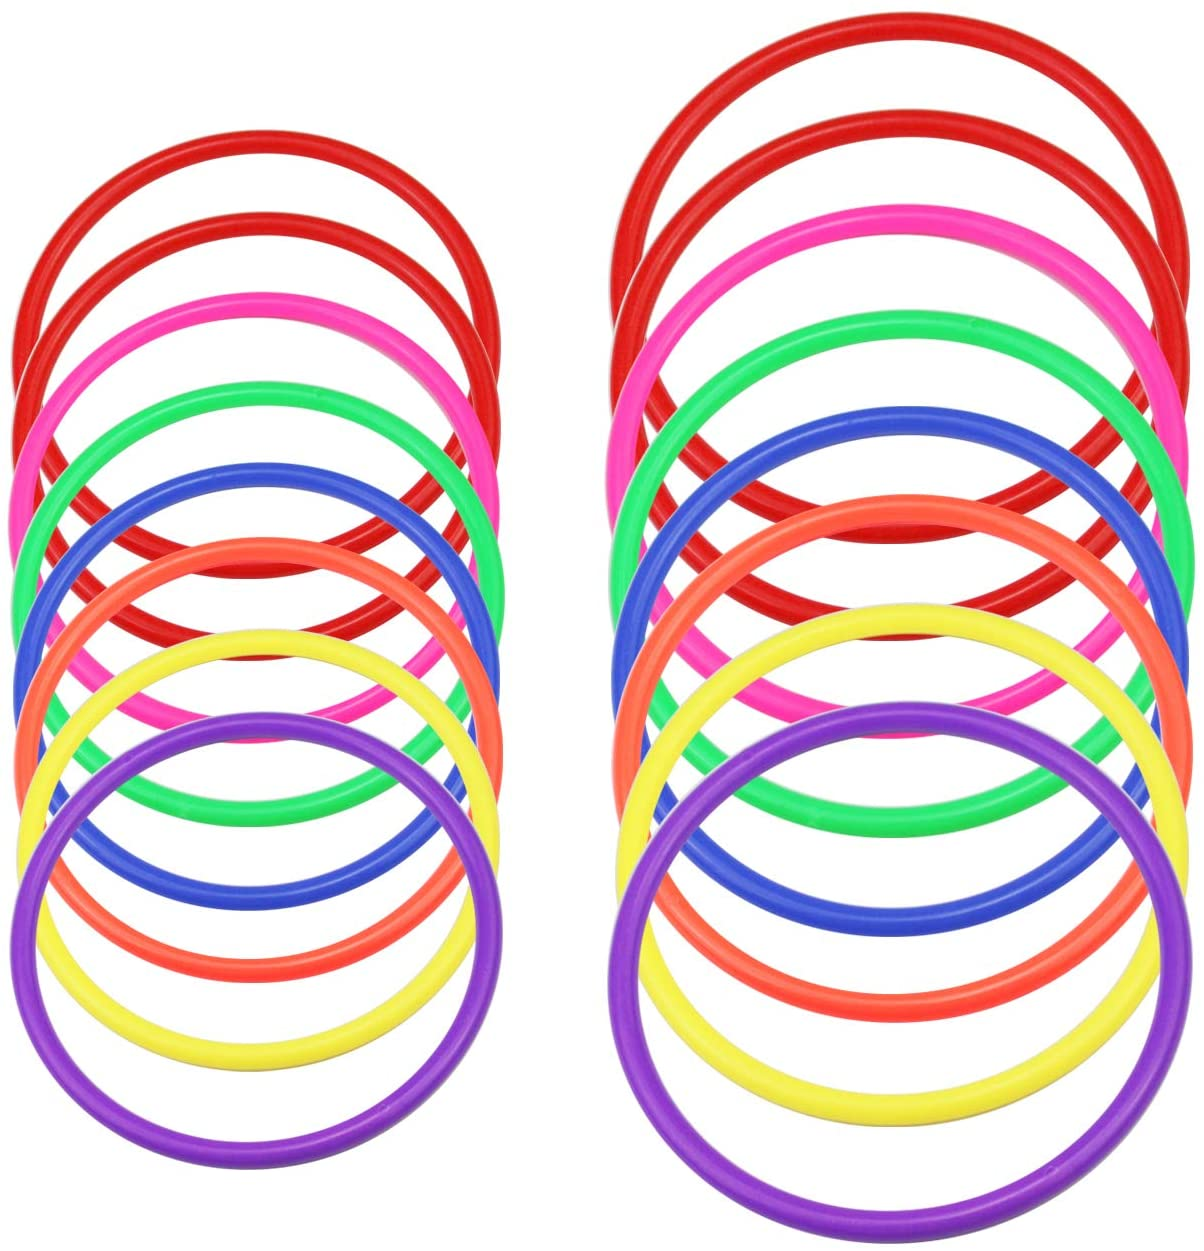 WeiMeet 16 Pieces Plastic Toss Rings Kids Gaming Toss Ring for Speed and Agility Practice Games Carnival Outdoor Games